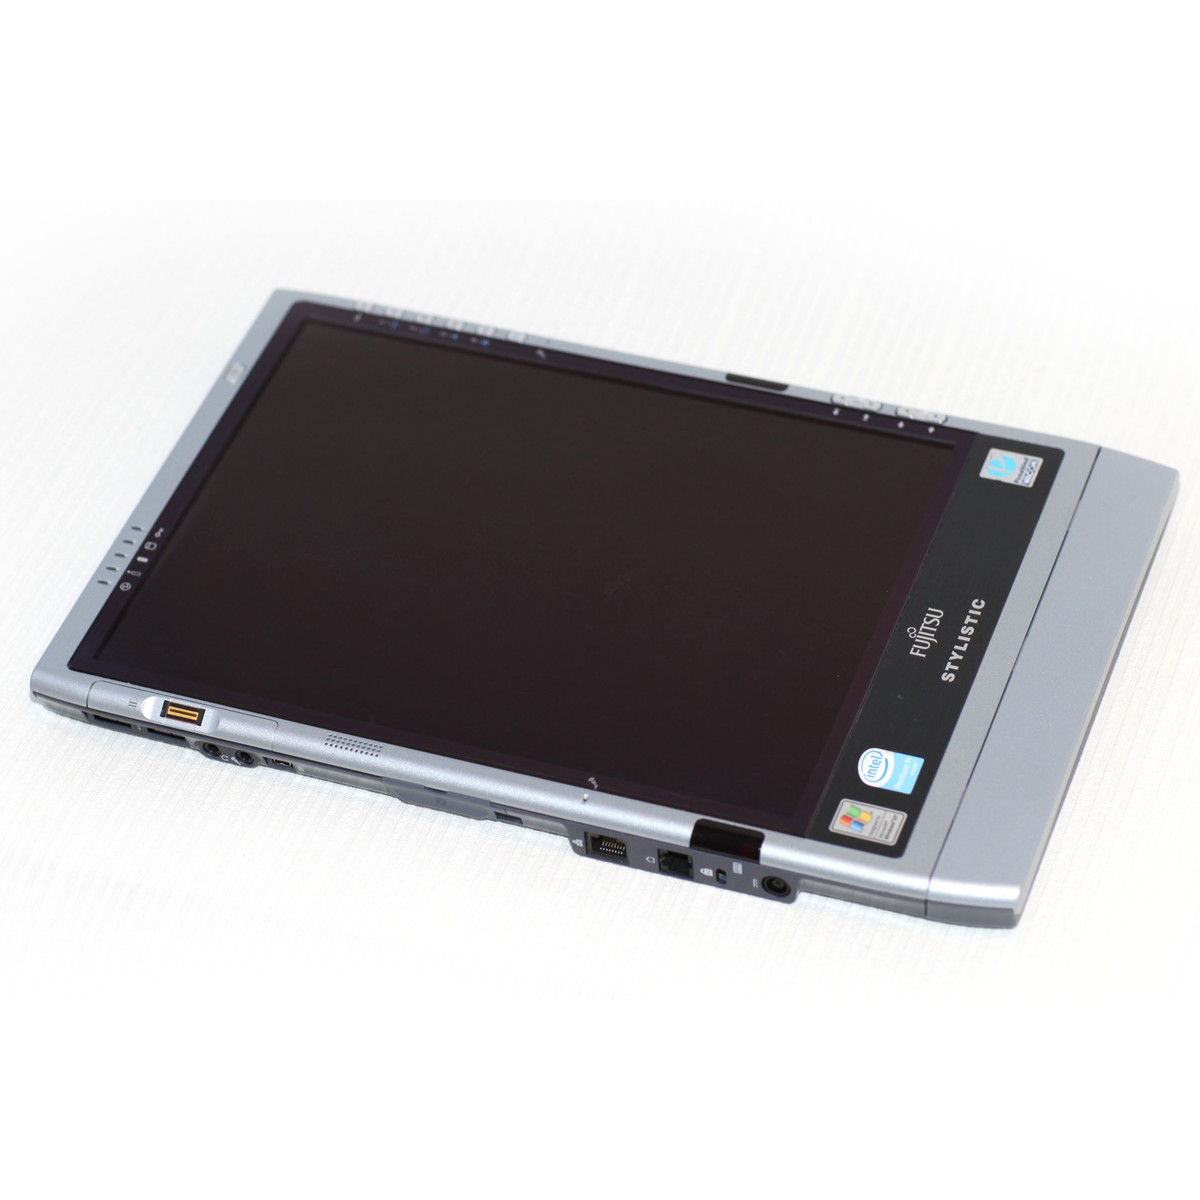 Tablet Pc St5032d 12.1 Inch Pentium M 1.26ghz 1gb Ddr2 60gb Xp Tablet